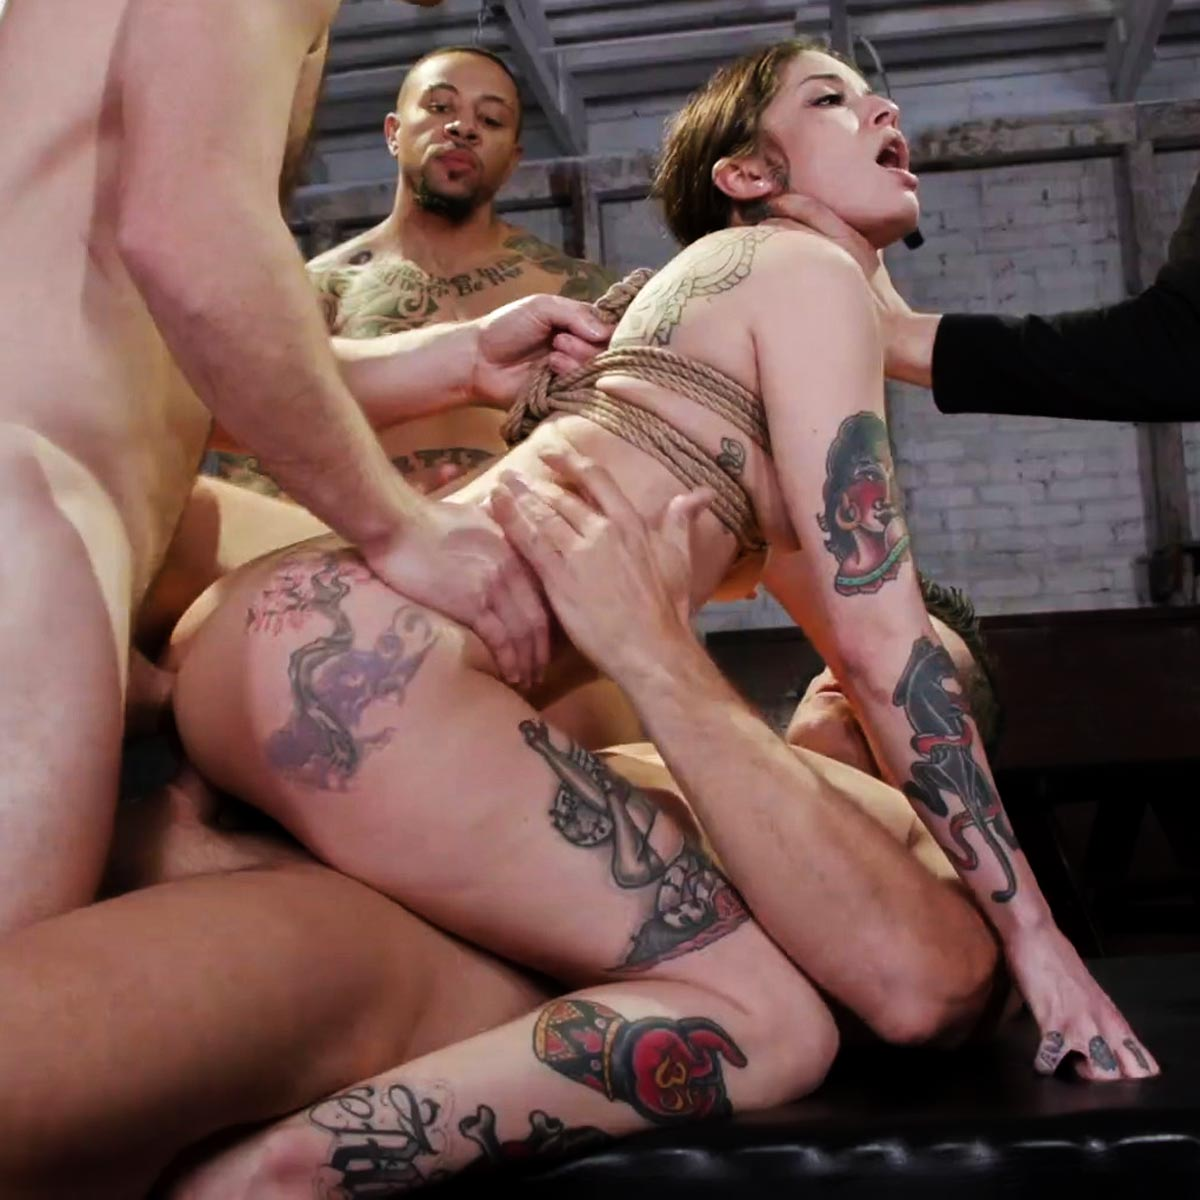 Vanessa Vega Gangbang sex at Bound GangBangs. A BDSM Double penetration and Anal sex video.